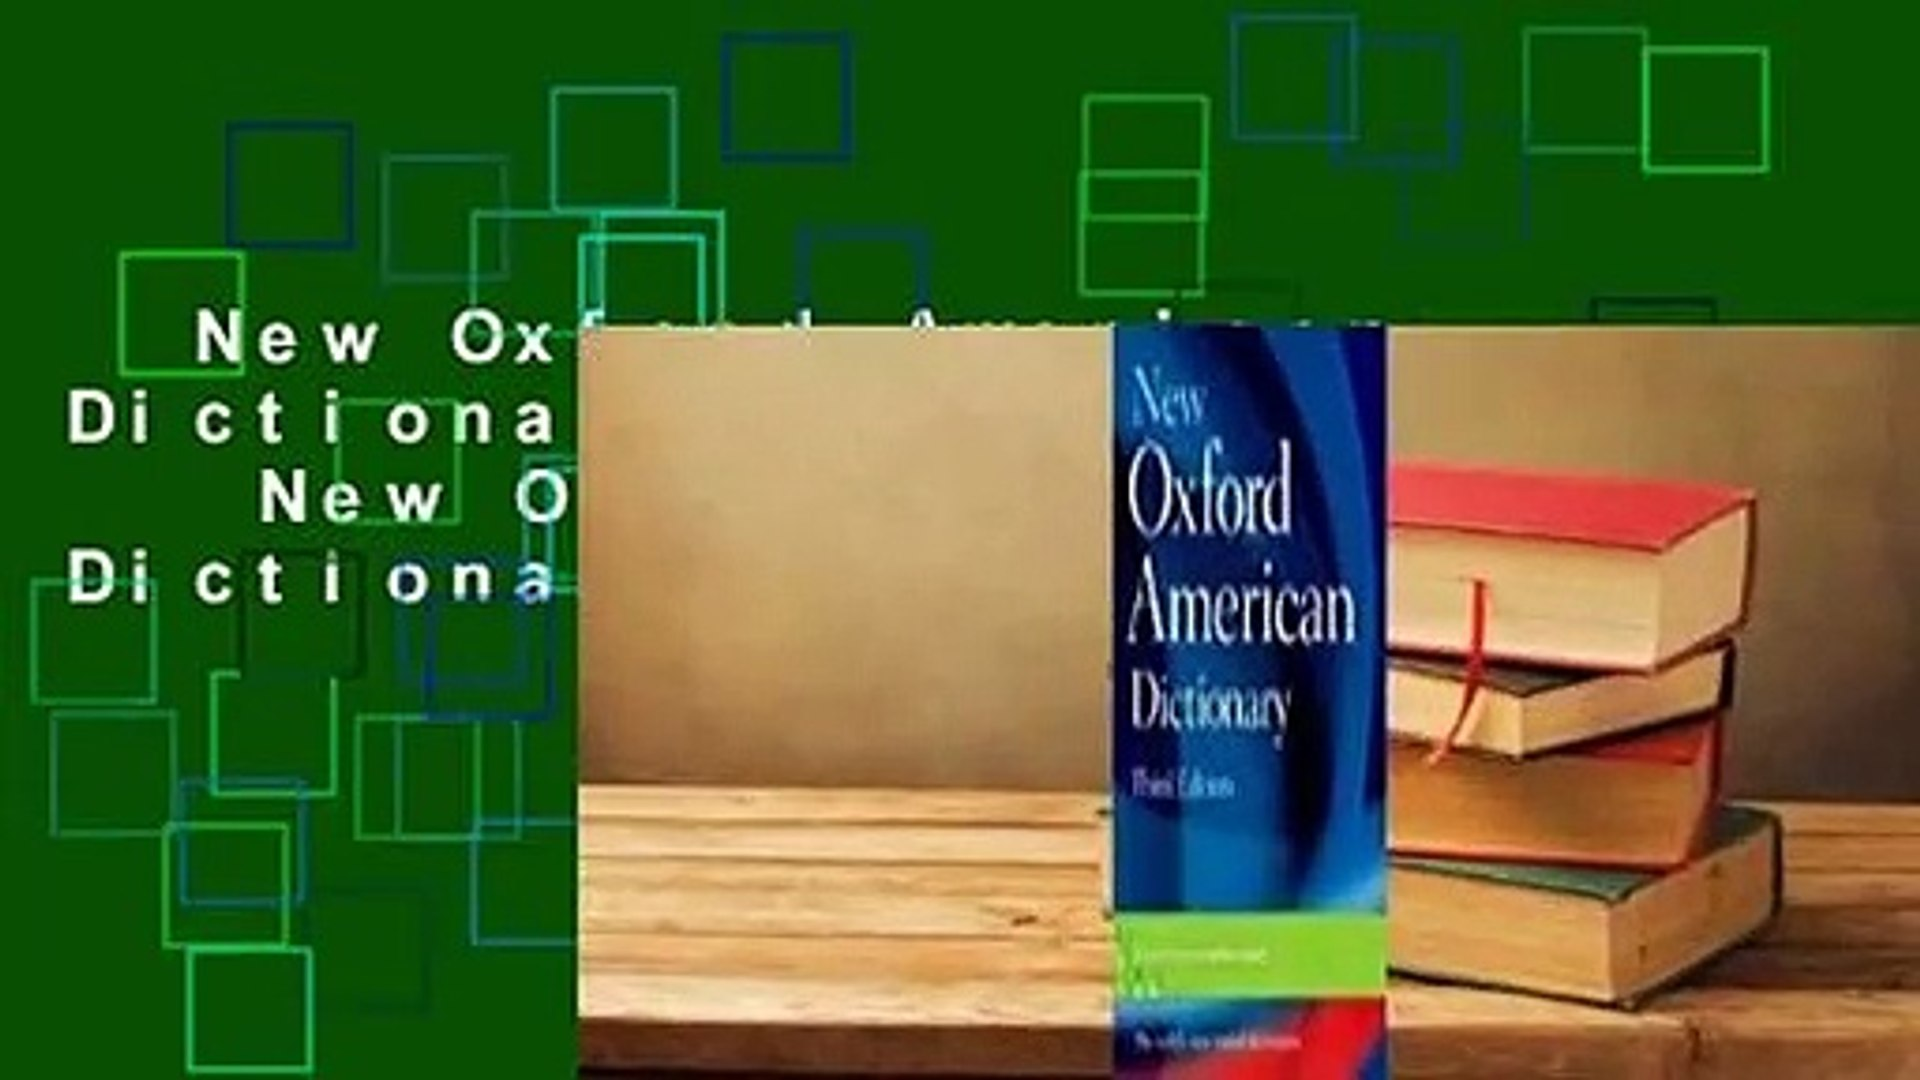 New Oxford American Dictionary Complete New Oxford American Dictionary  Complete